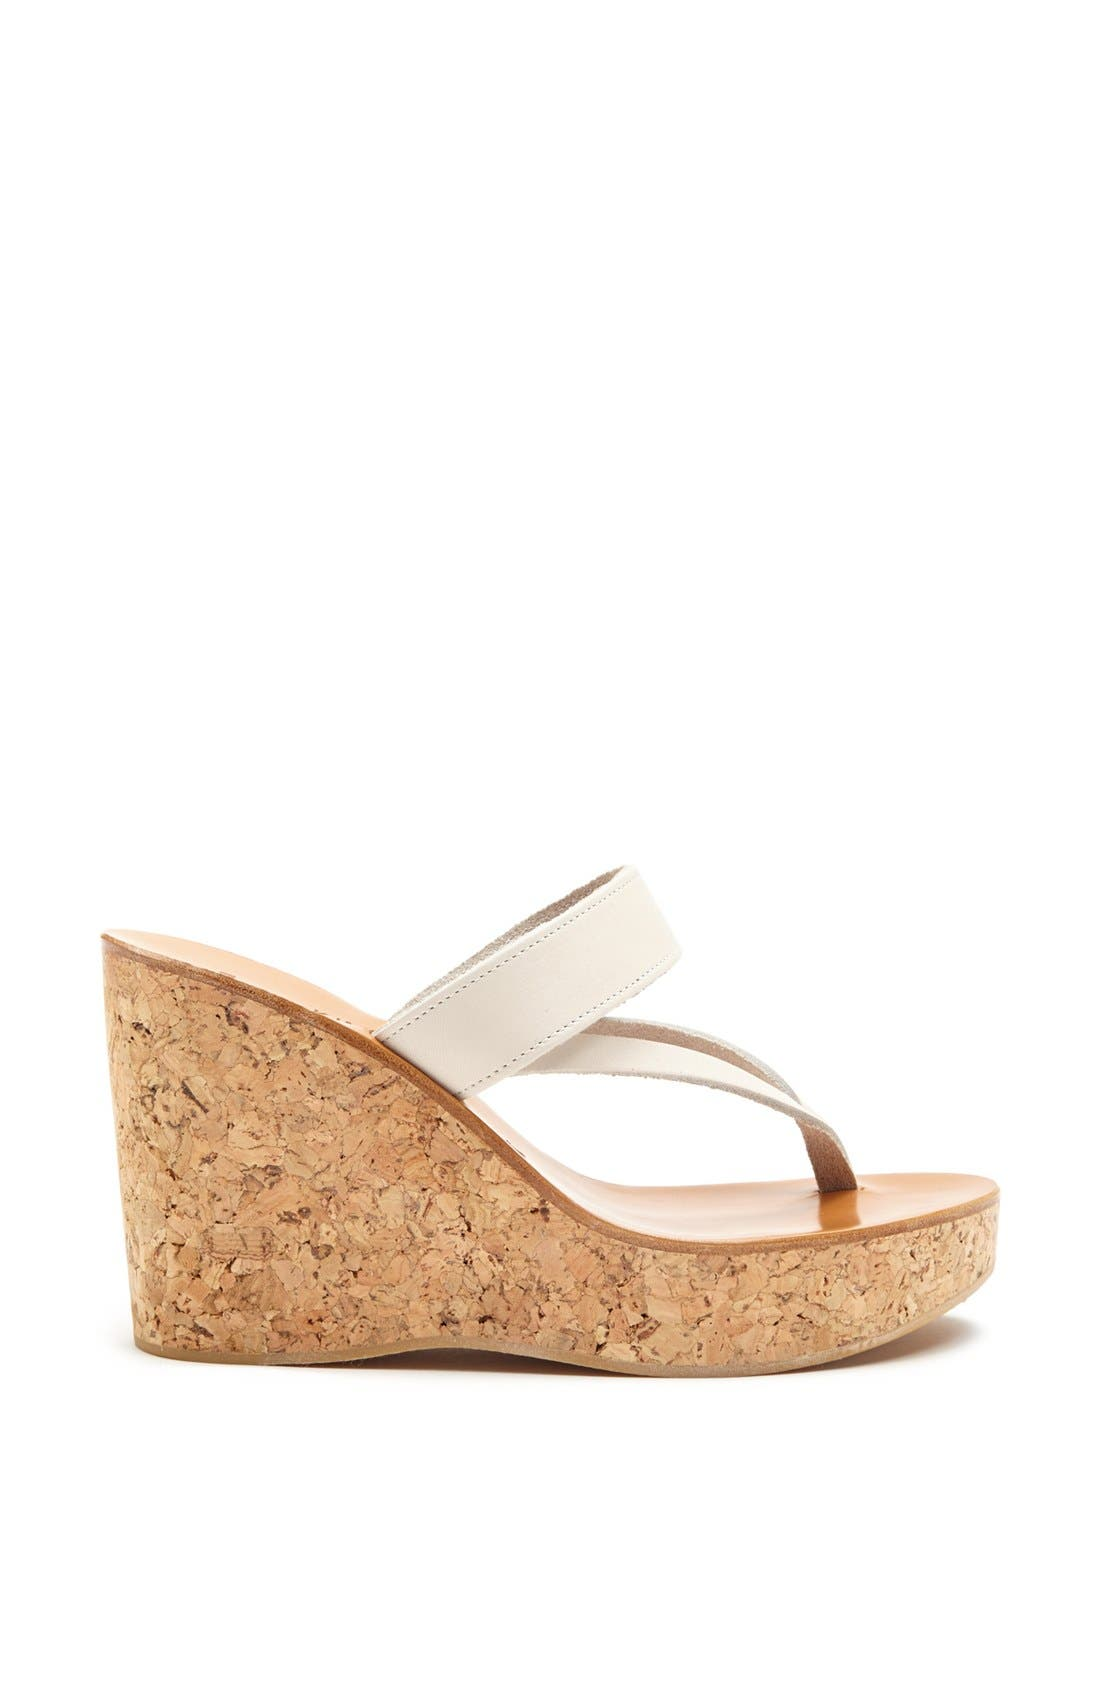 Alternate Image 3  - K.Jacques St. Tropez 'Saturnine' Cork Wedge Sandal